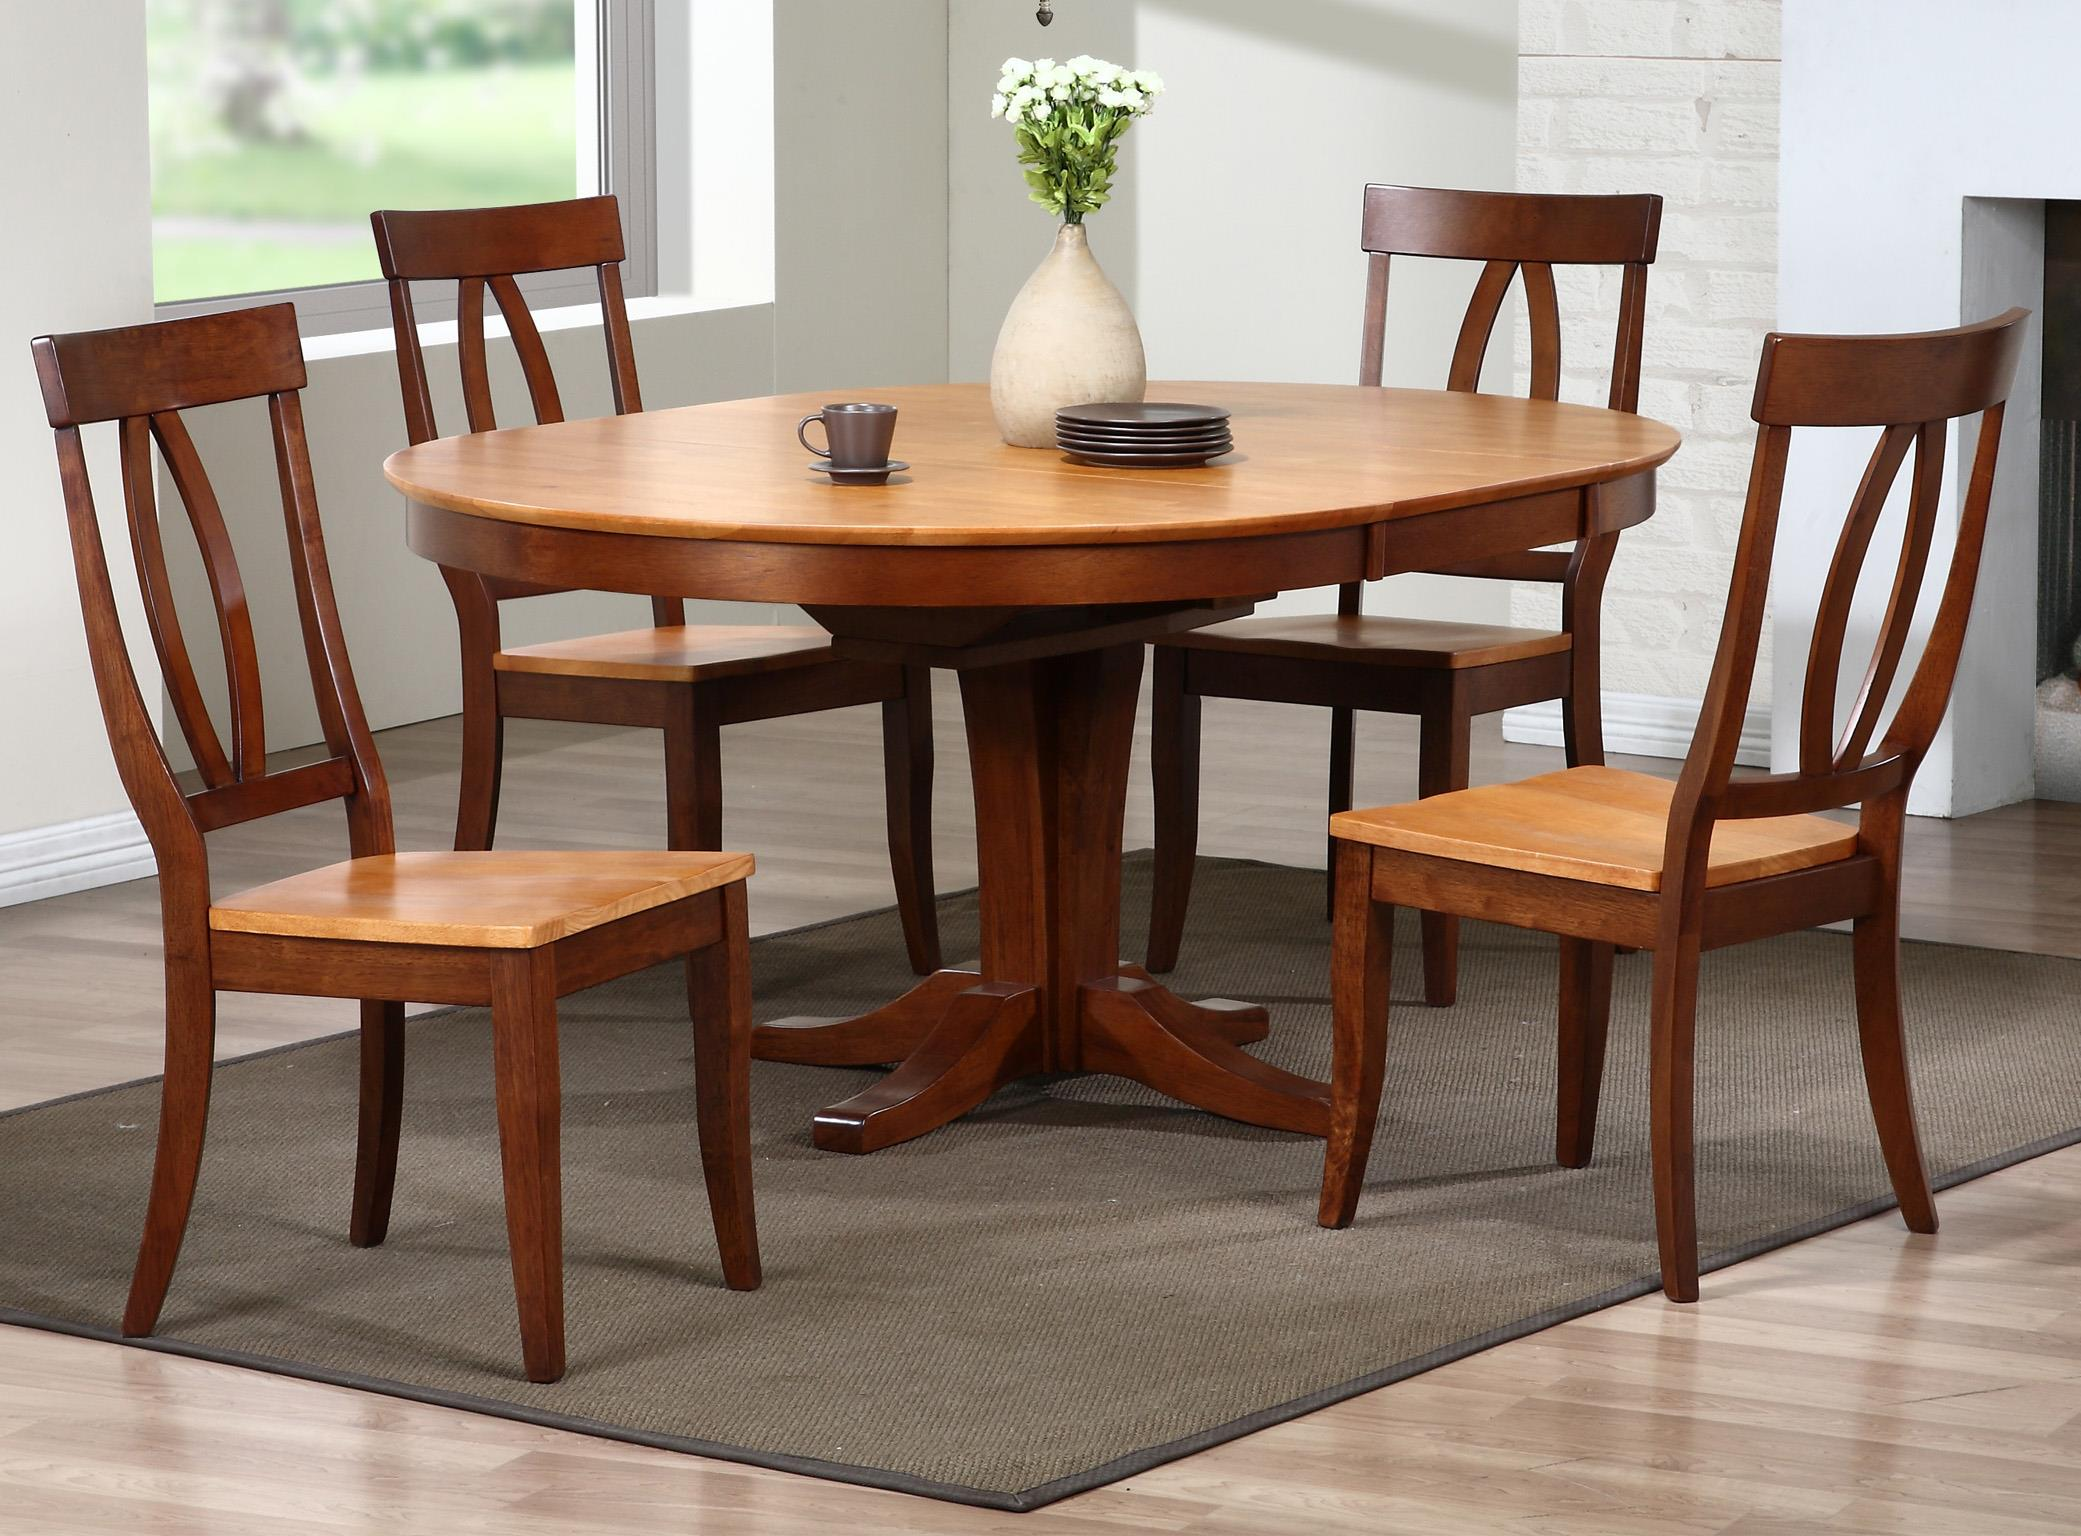 Delicieux Winners Only Santa Barbara 5 Piece Dining Set With Keyhole Back Chairs    Item Number: